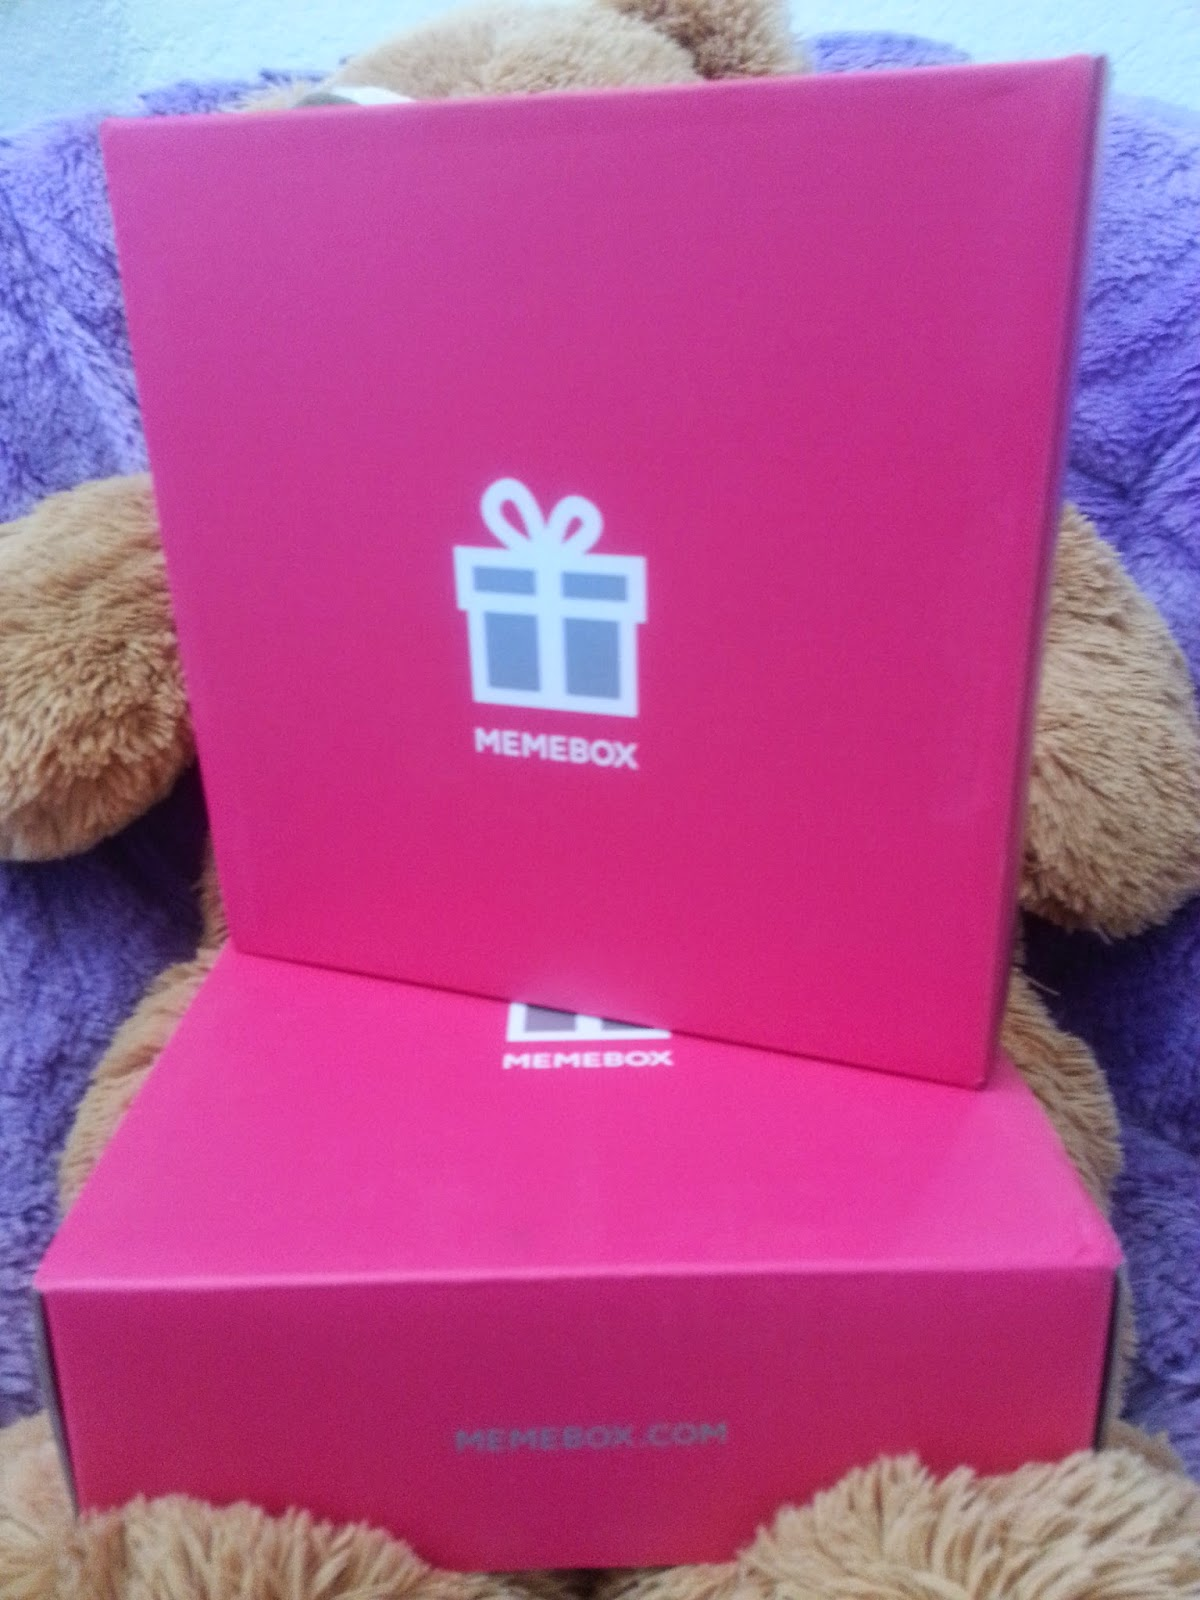 Memebox's signature pink boxes.